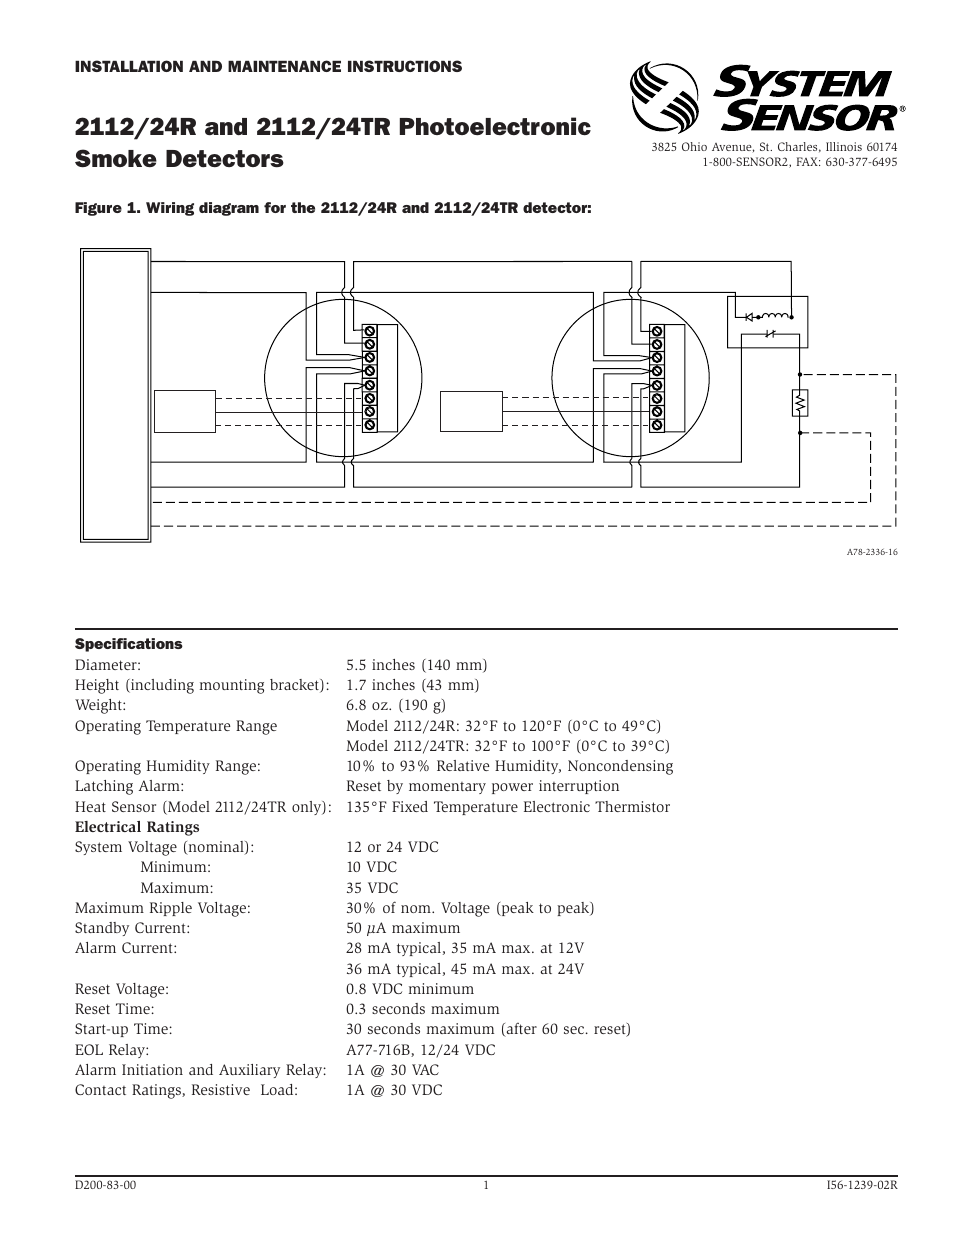 System Sensor 2112 24r And 2112 24tr Photoelectronic User Manual